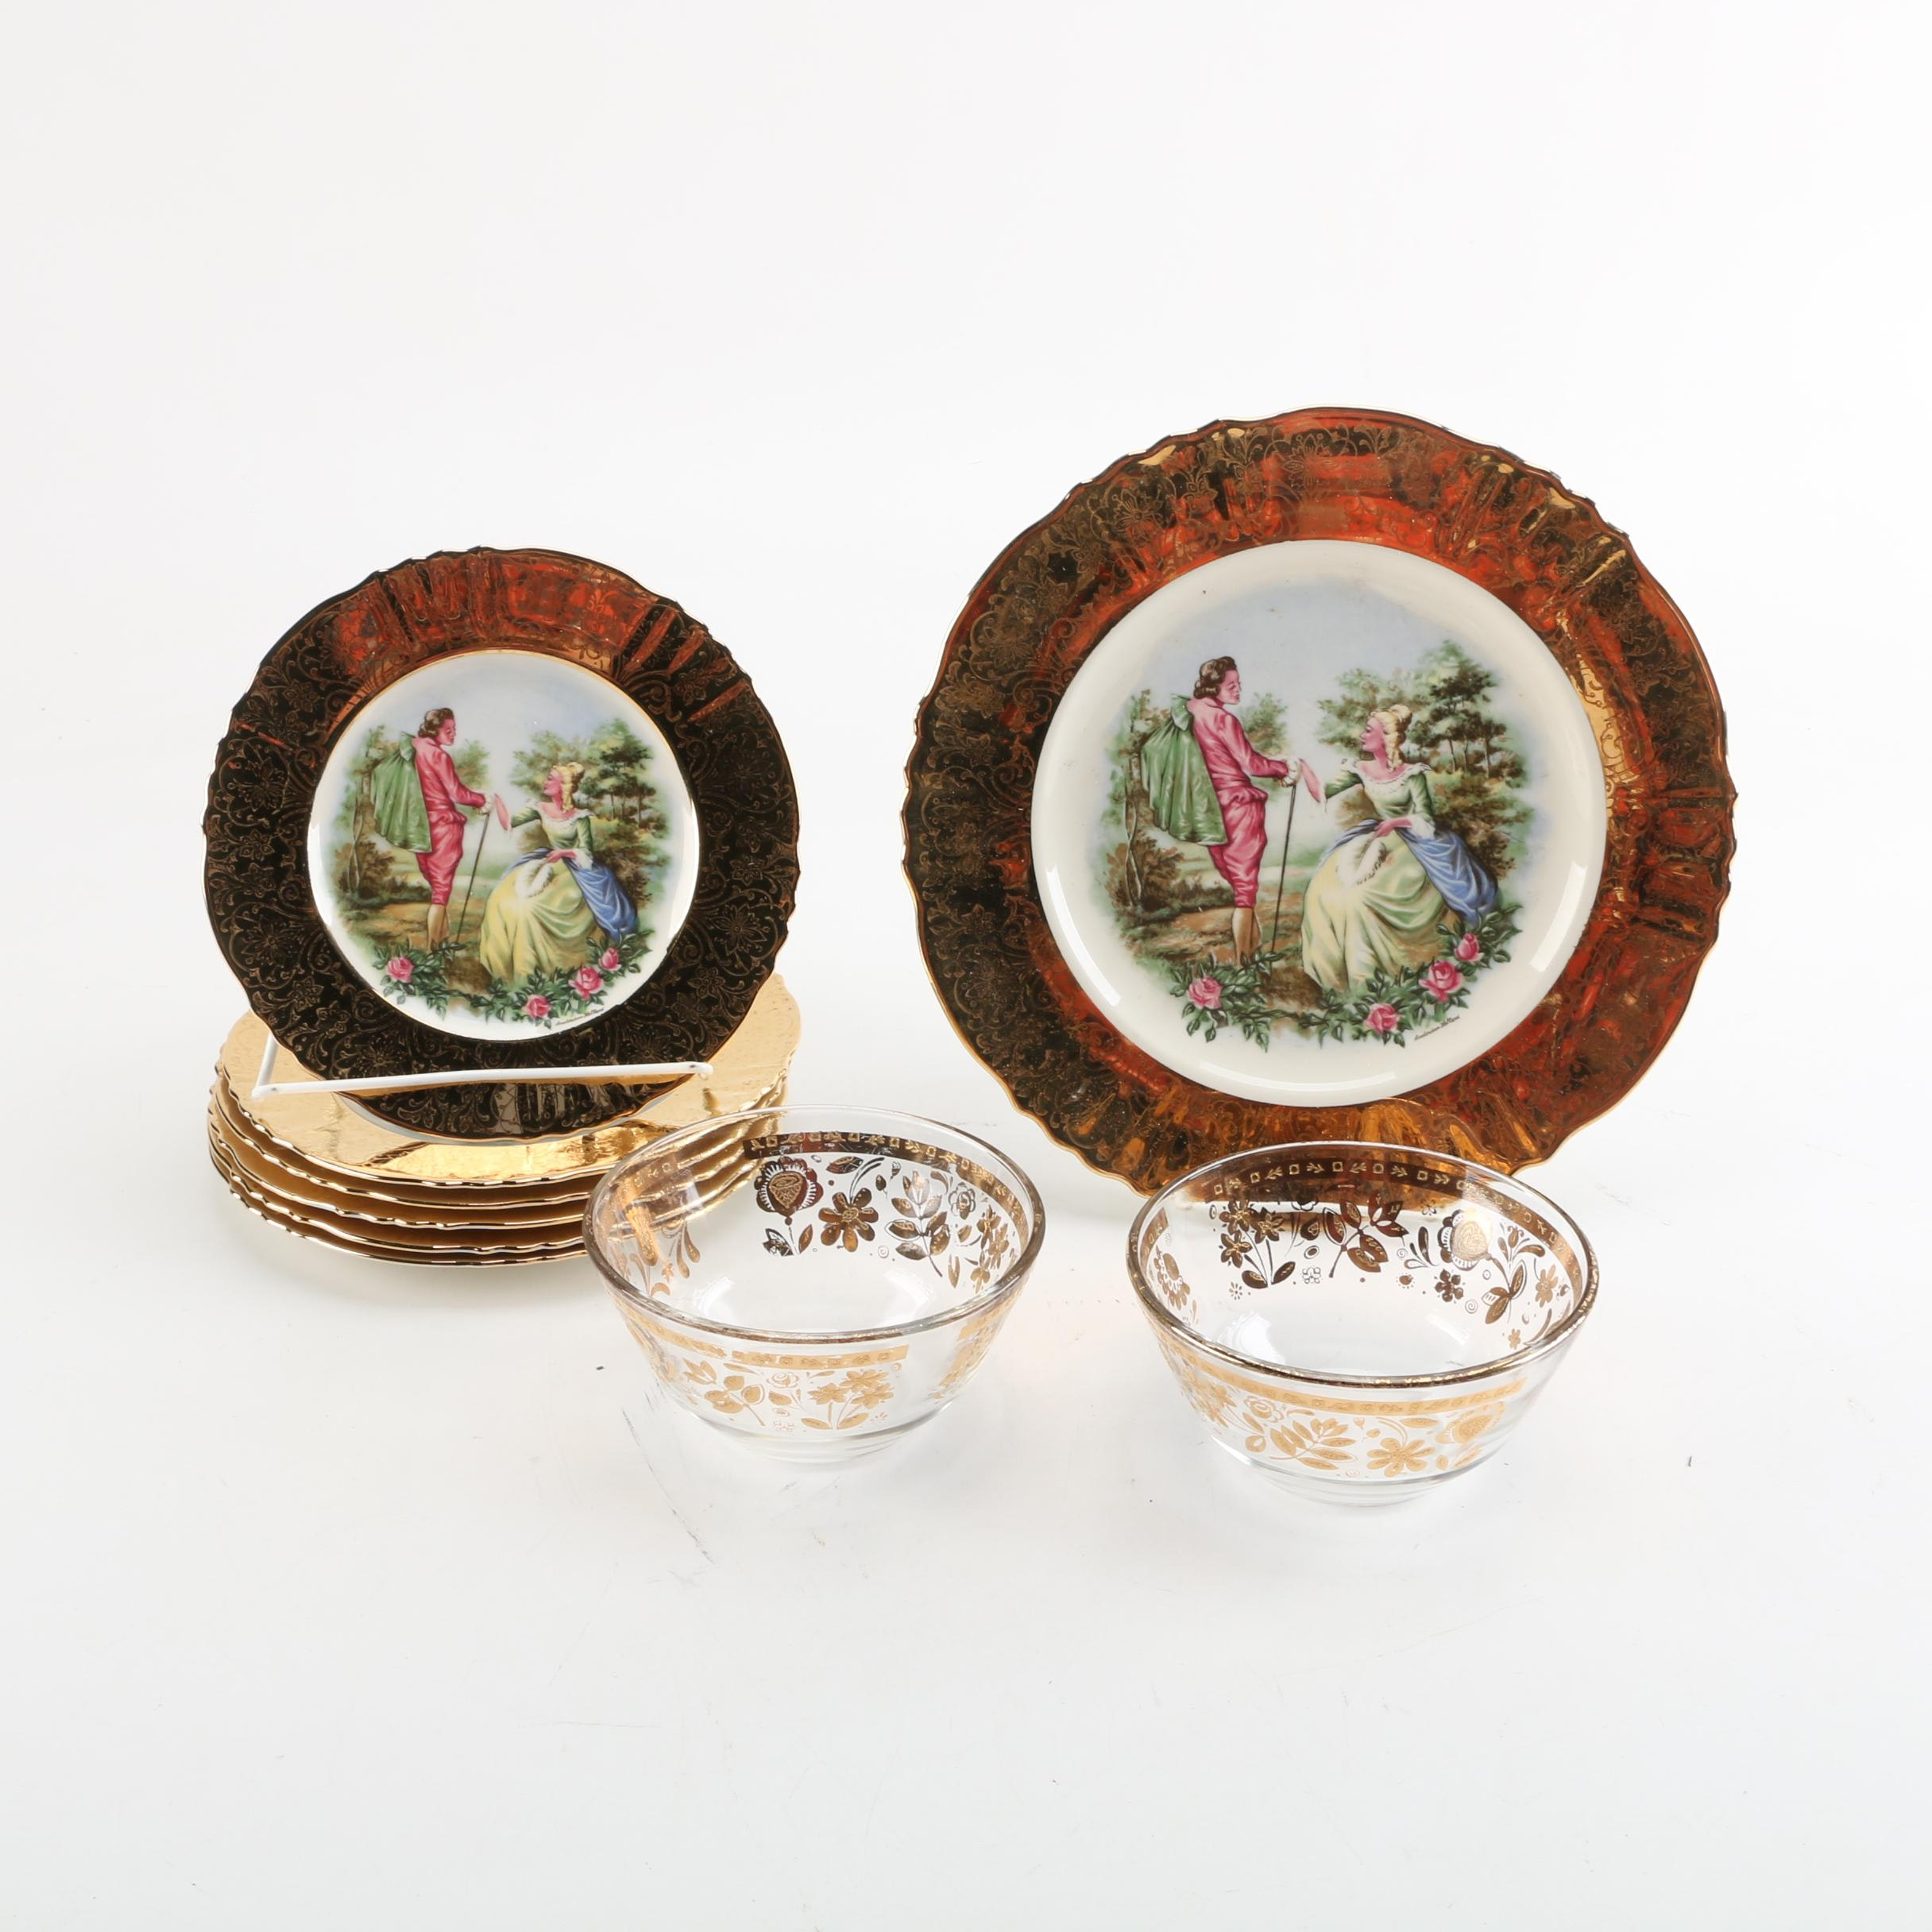 Vintage Atlas Fine China Romantic Scene Plates and Gold Leaf Glass Bowls